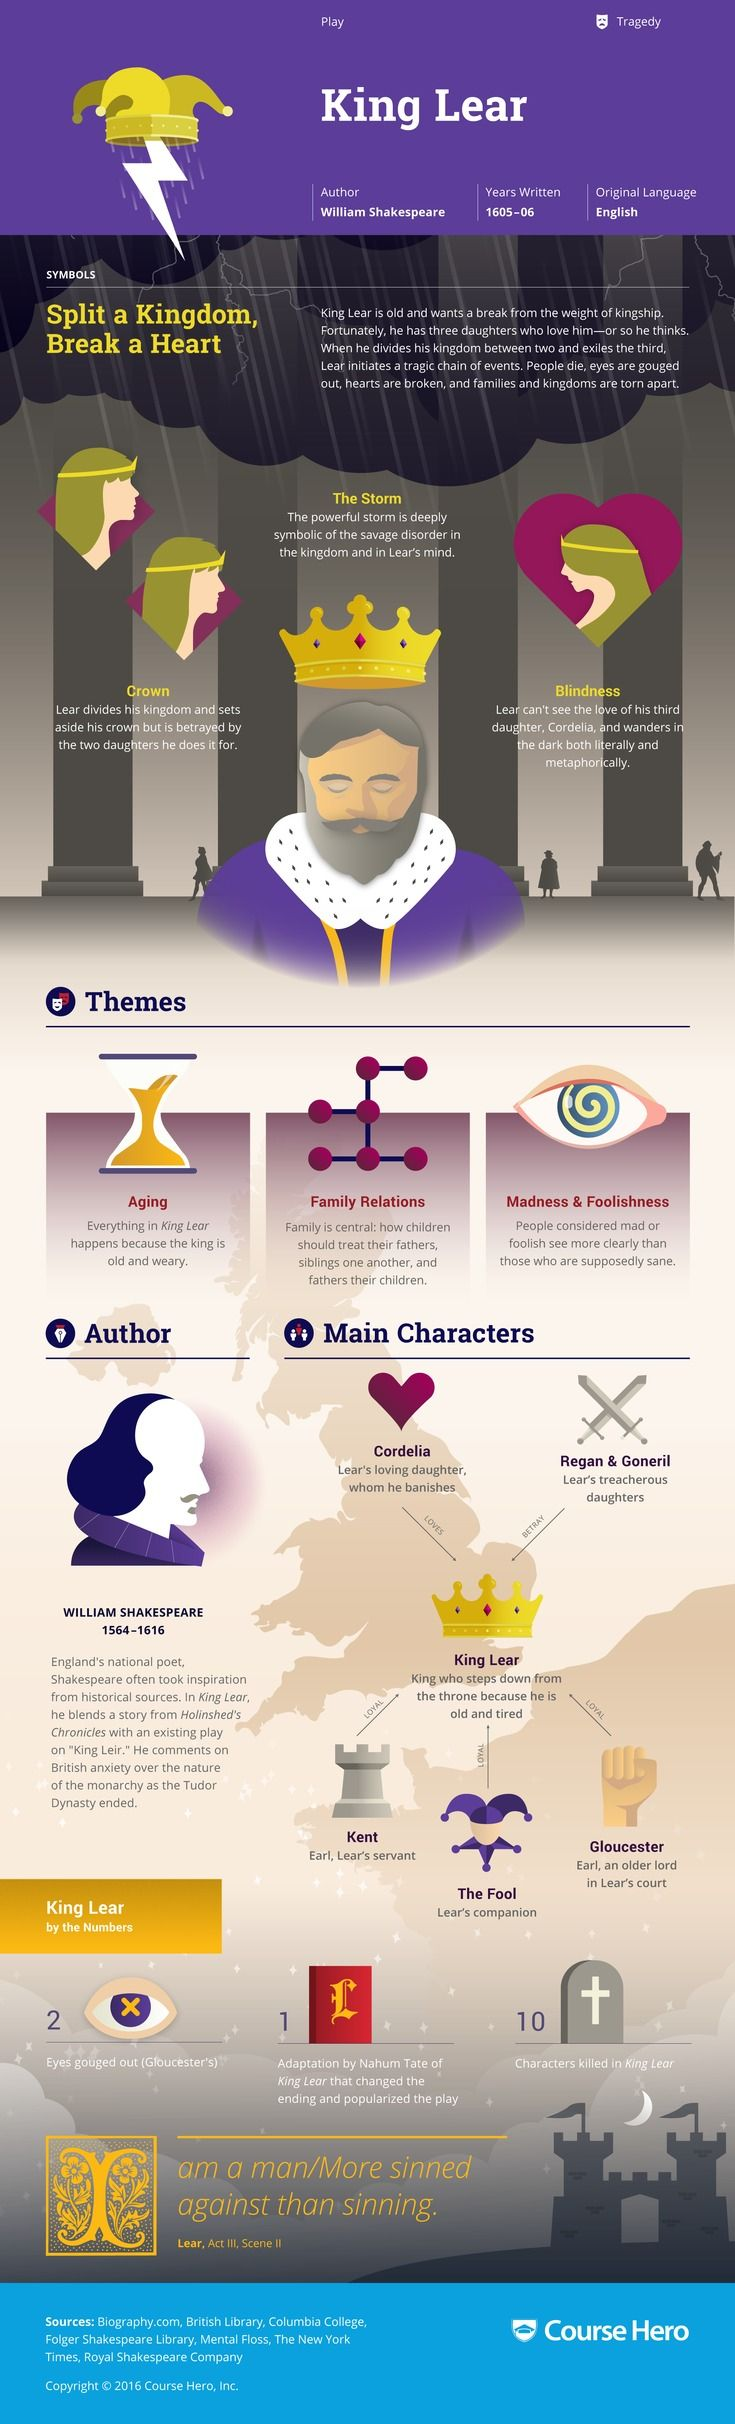 This 'King Lear' infographic from Course Hero is as awesome as it is helpful. Check it out!